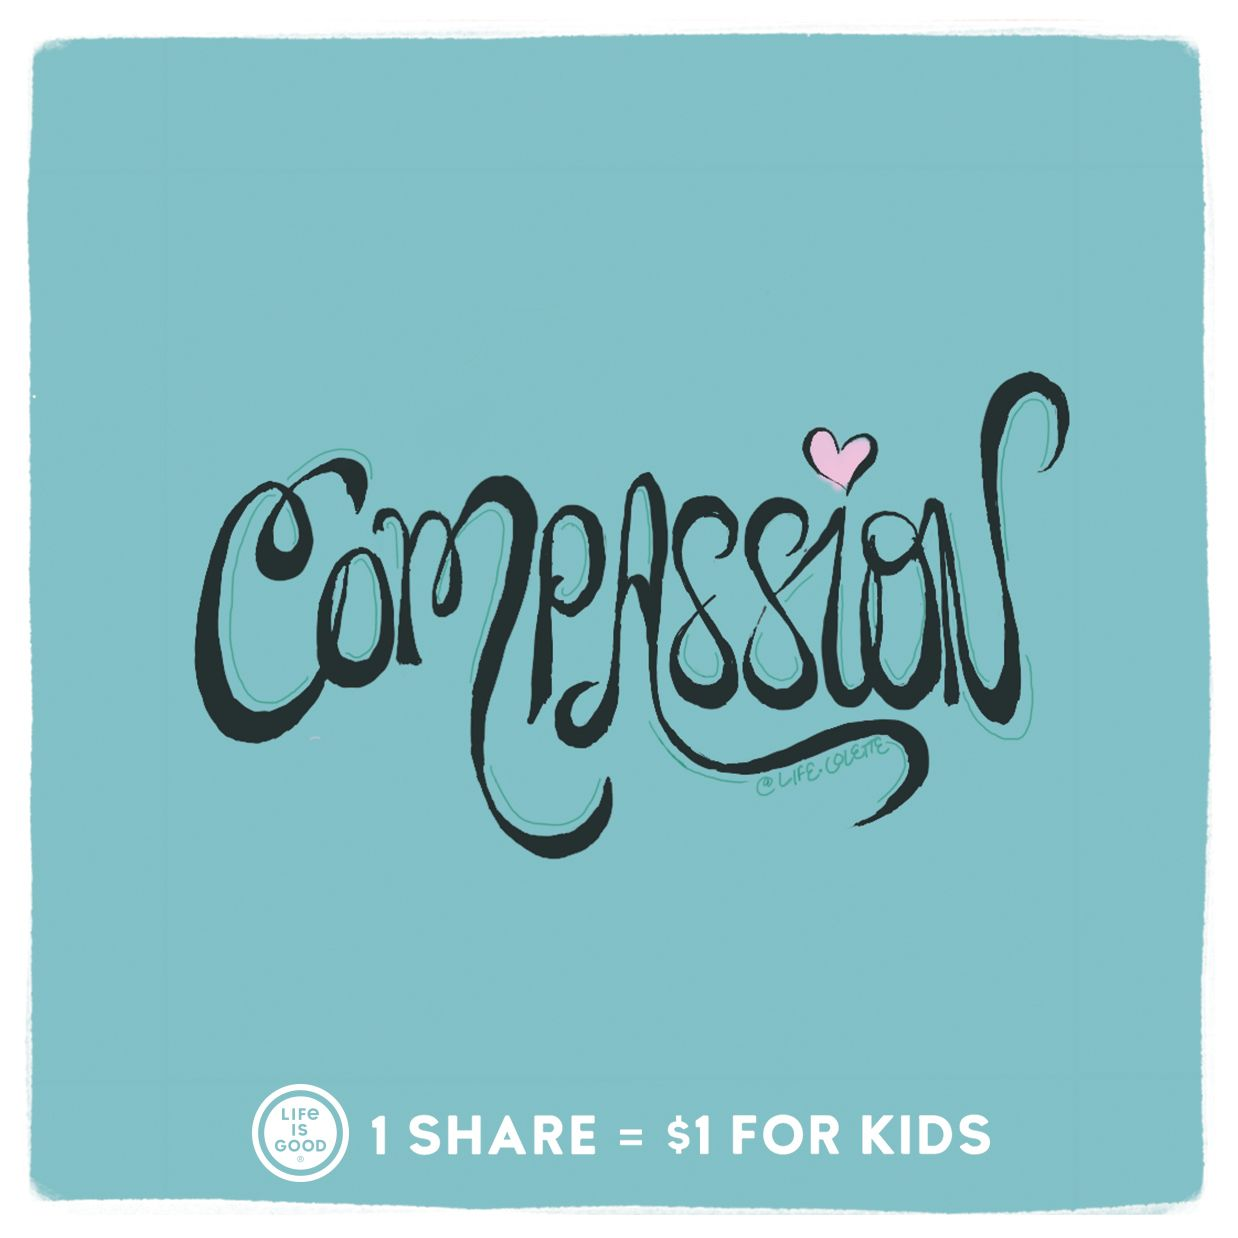 Something Good Artwork Superpowers Compassion